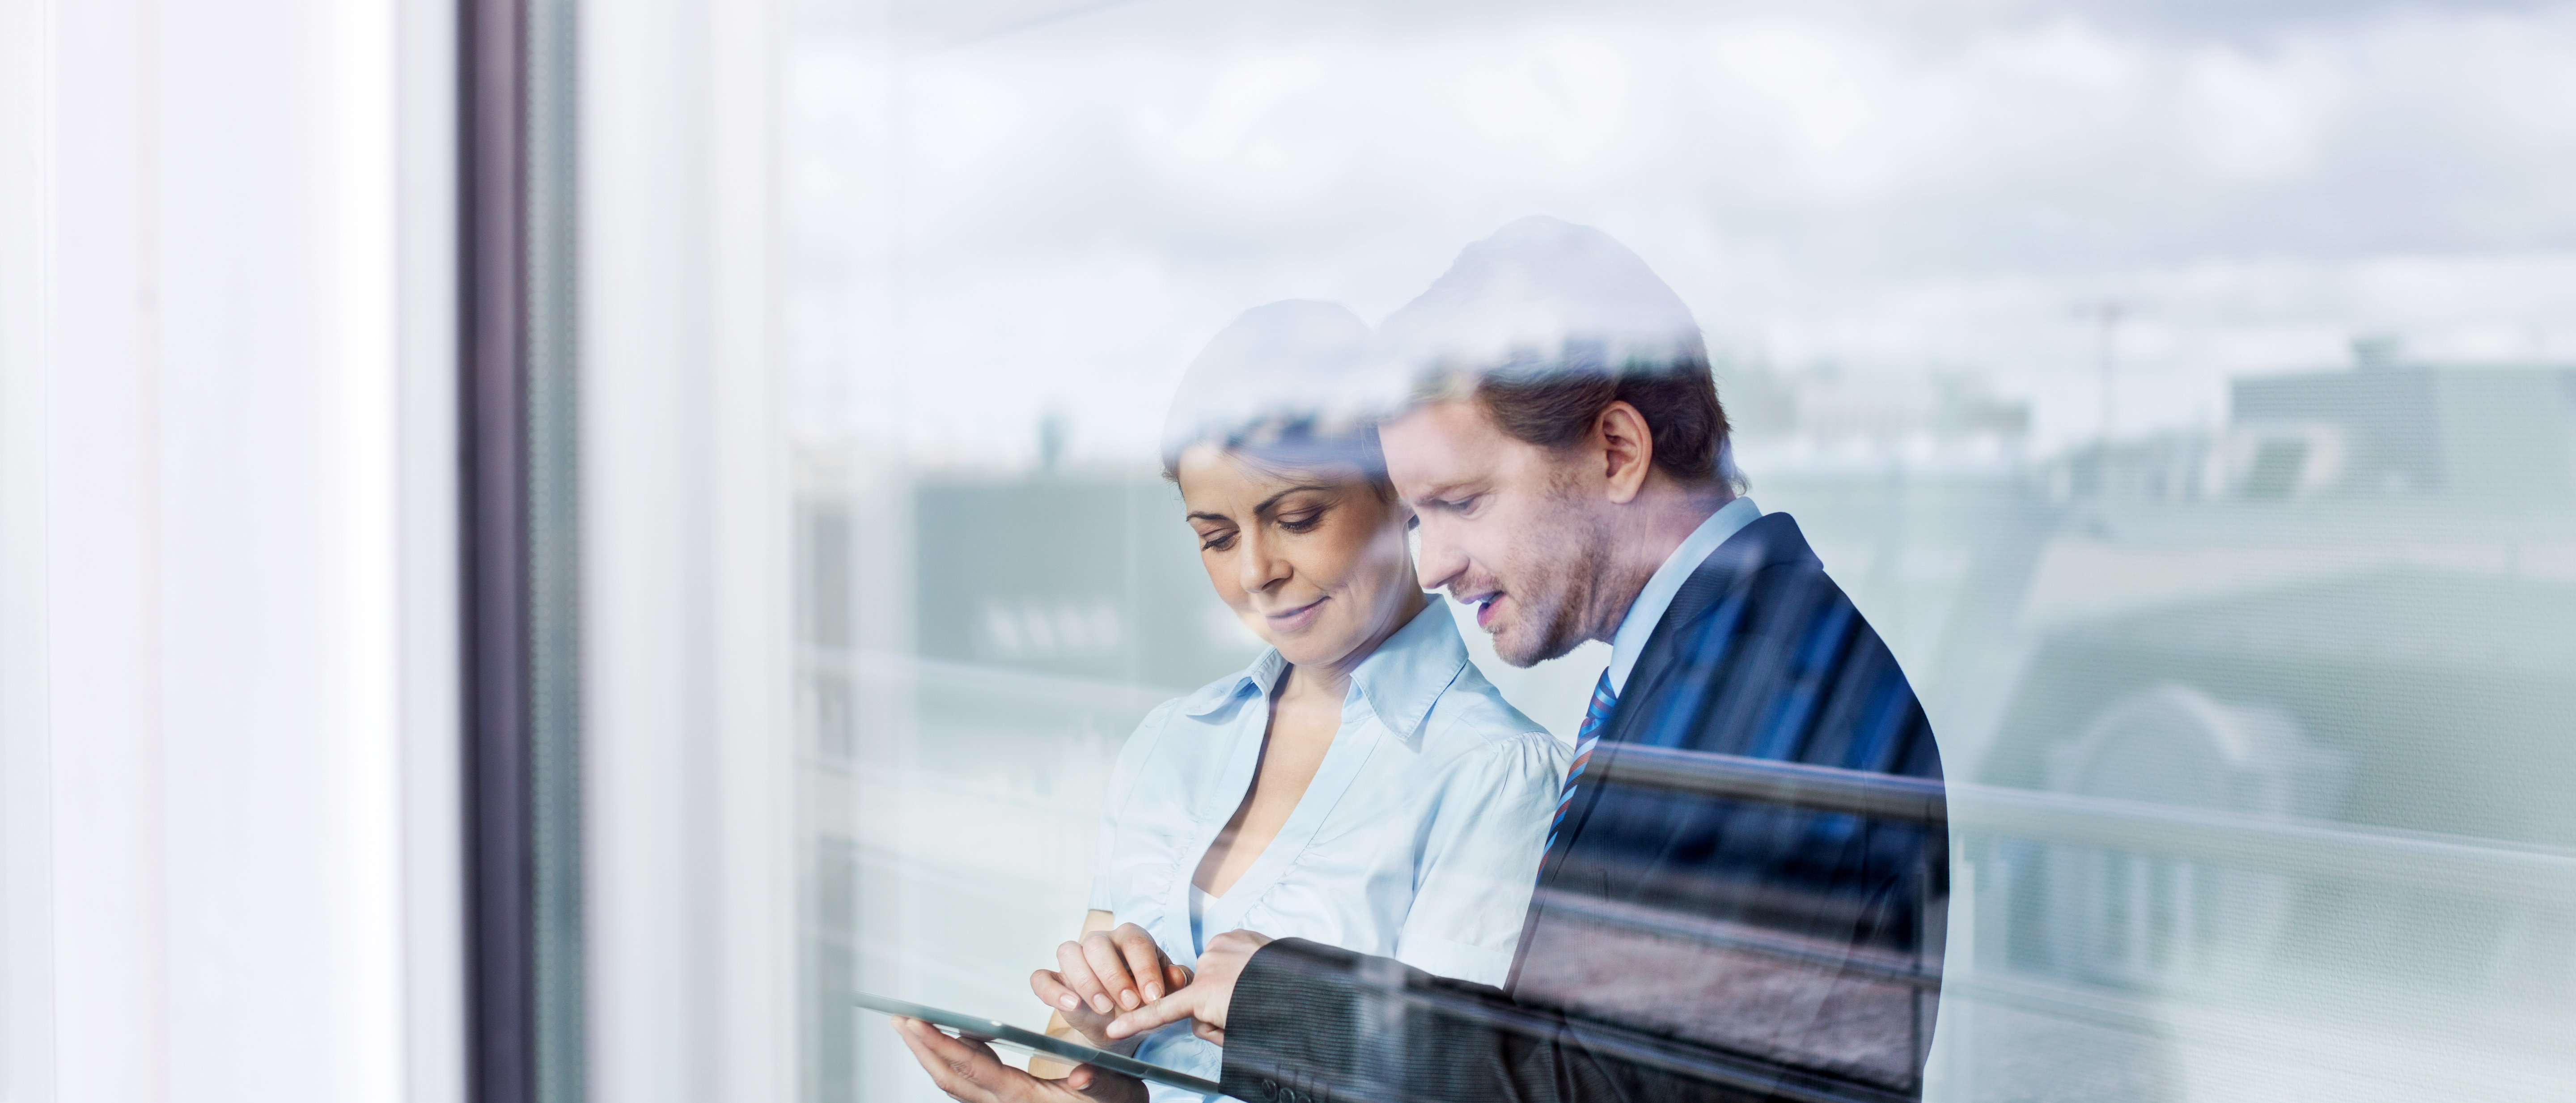 man and woman looking at tablet foto istock